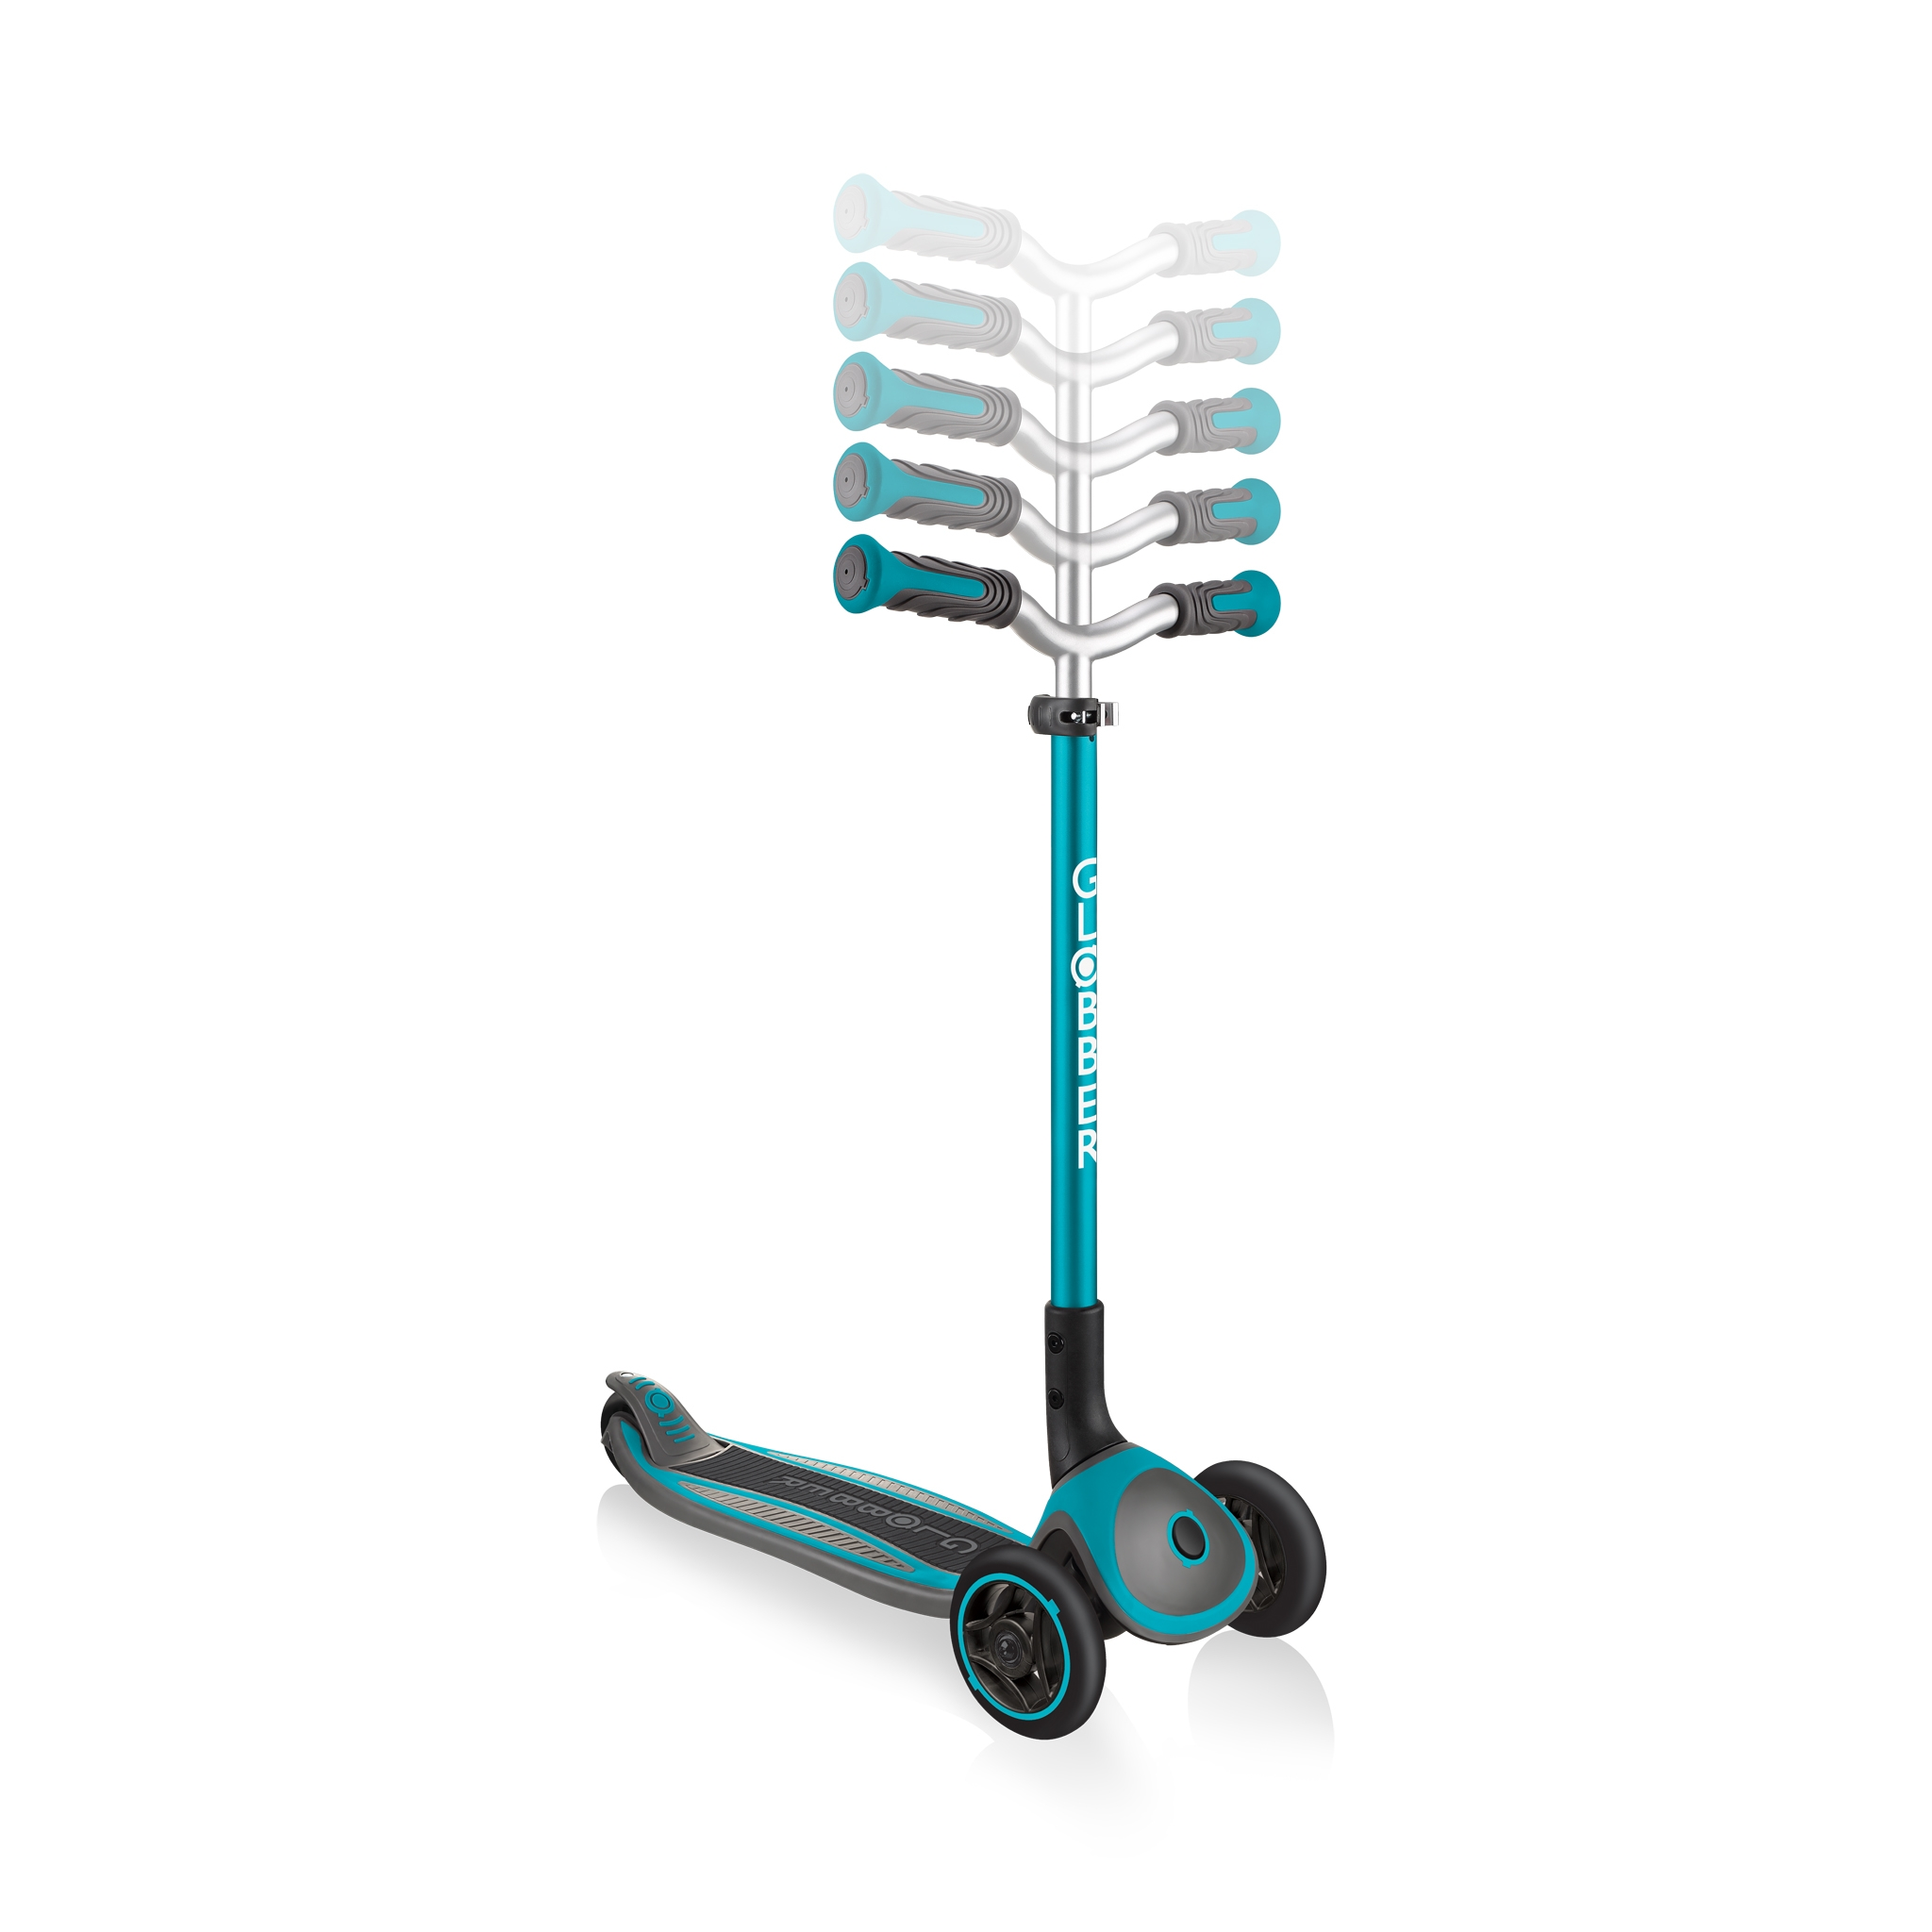 Globber-MASTER-premium-3-wheel-foldable-scooters-for-kids-with-5-height-adjustable-T-bar_teal 2